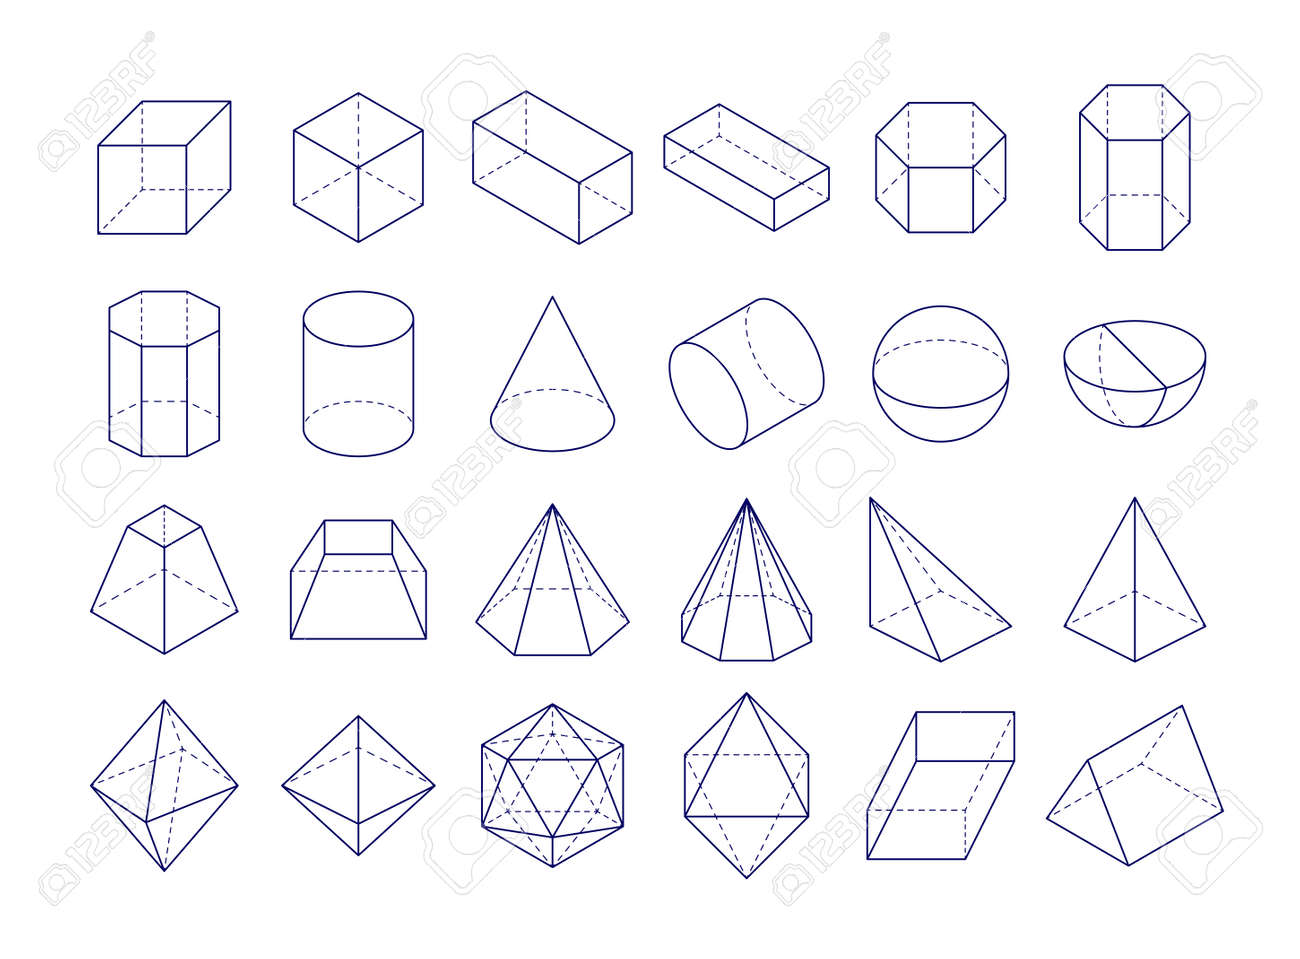 3D geometric shapes icon